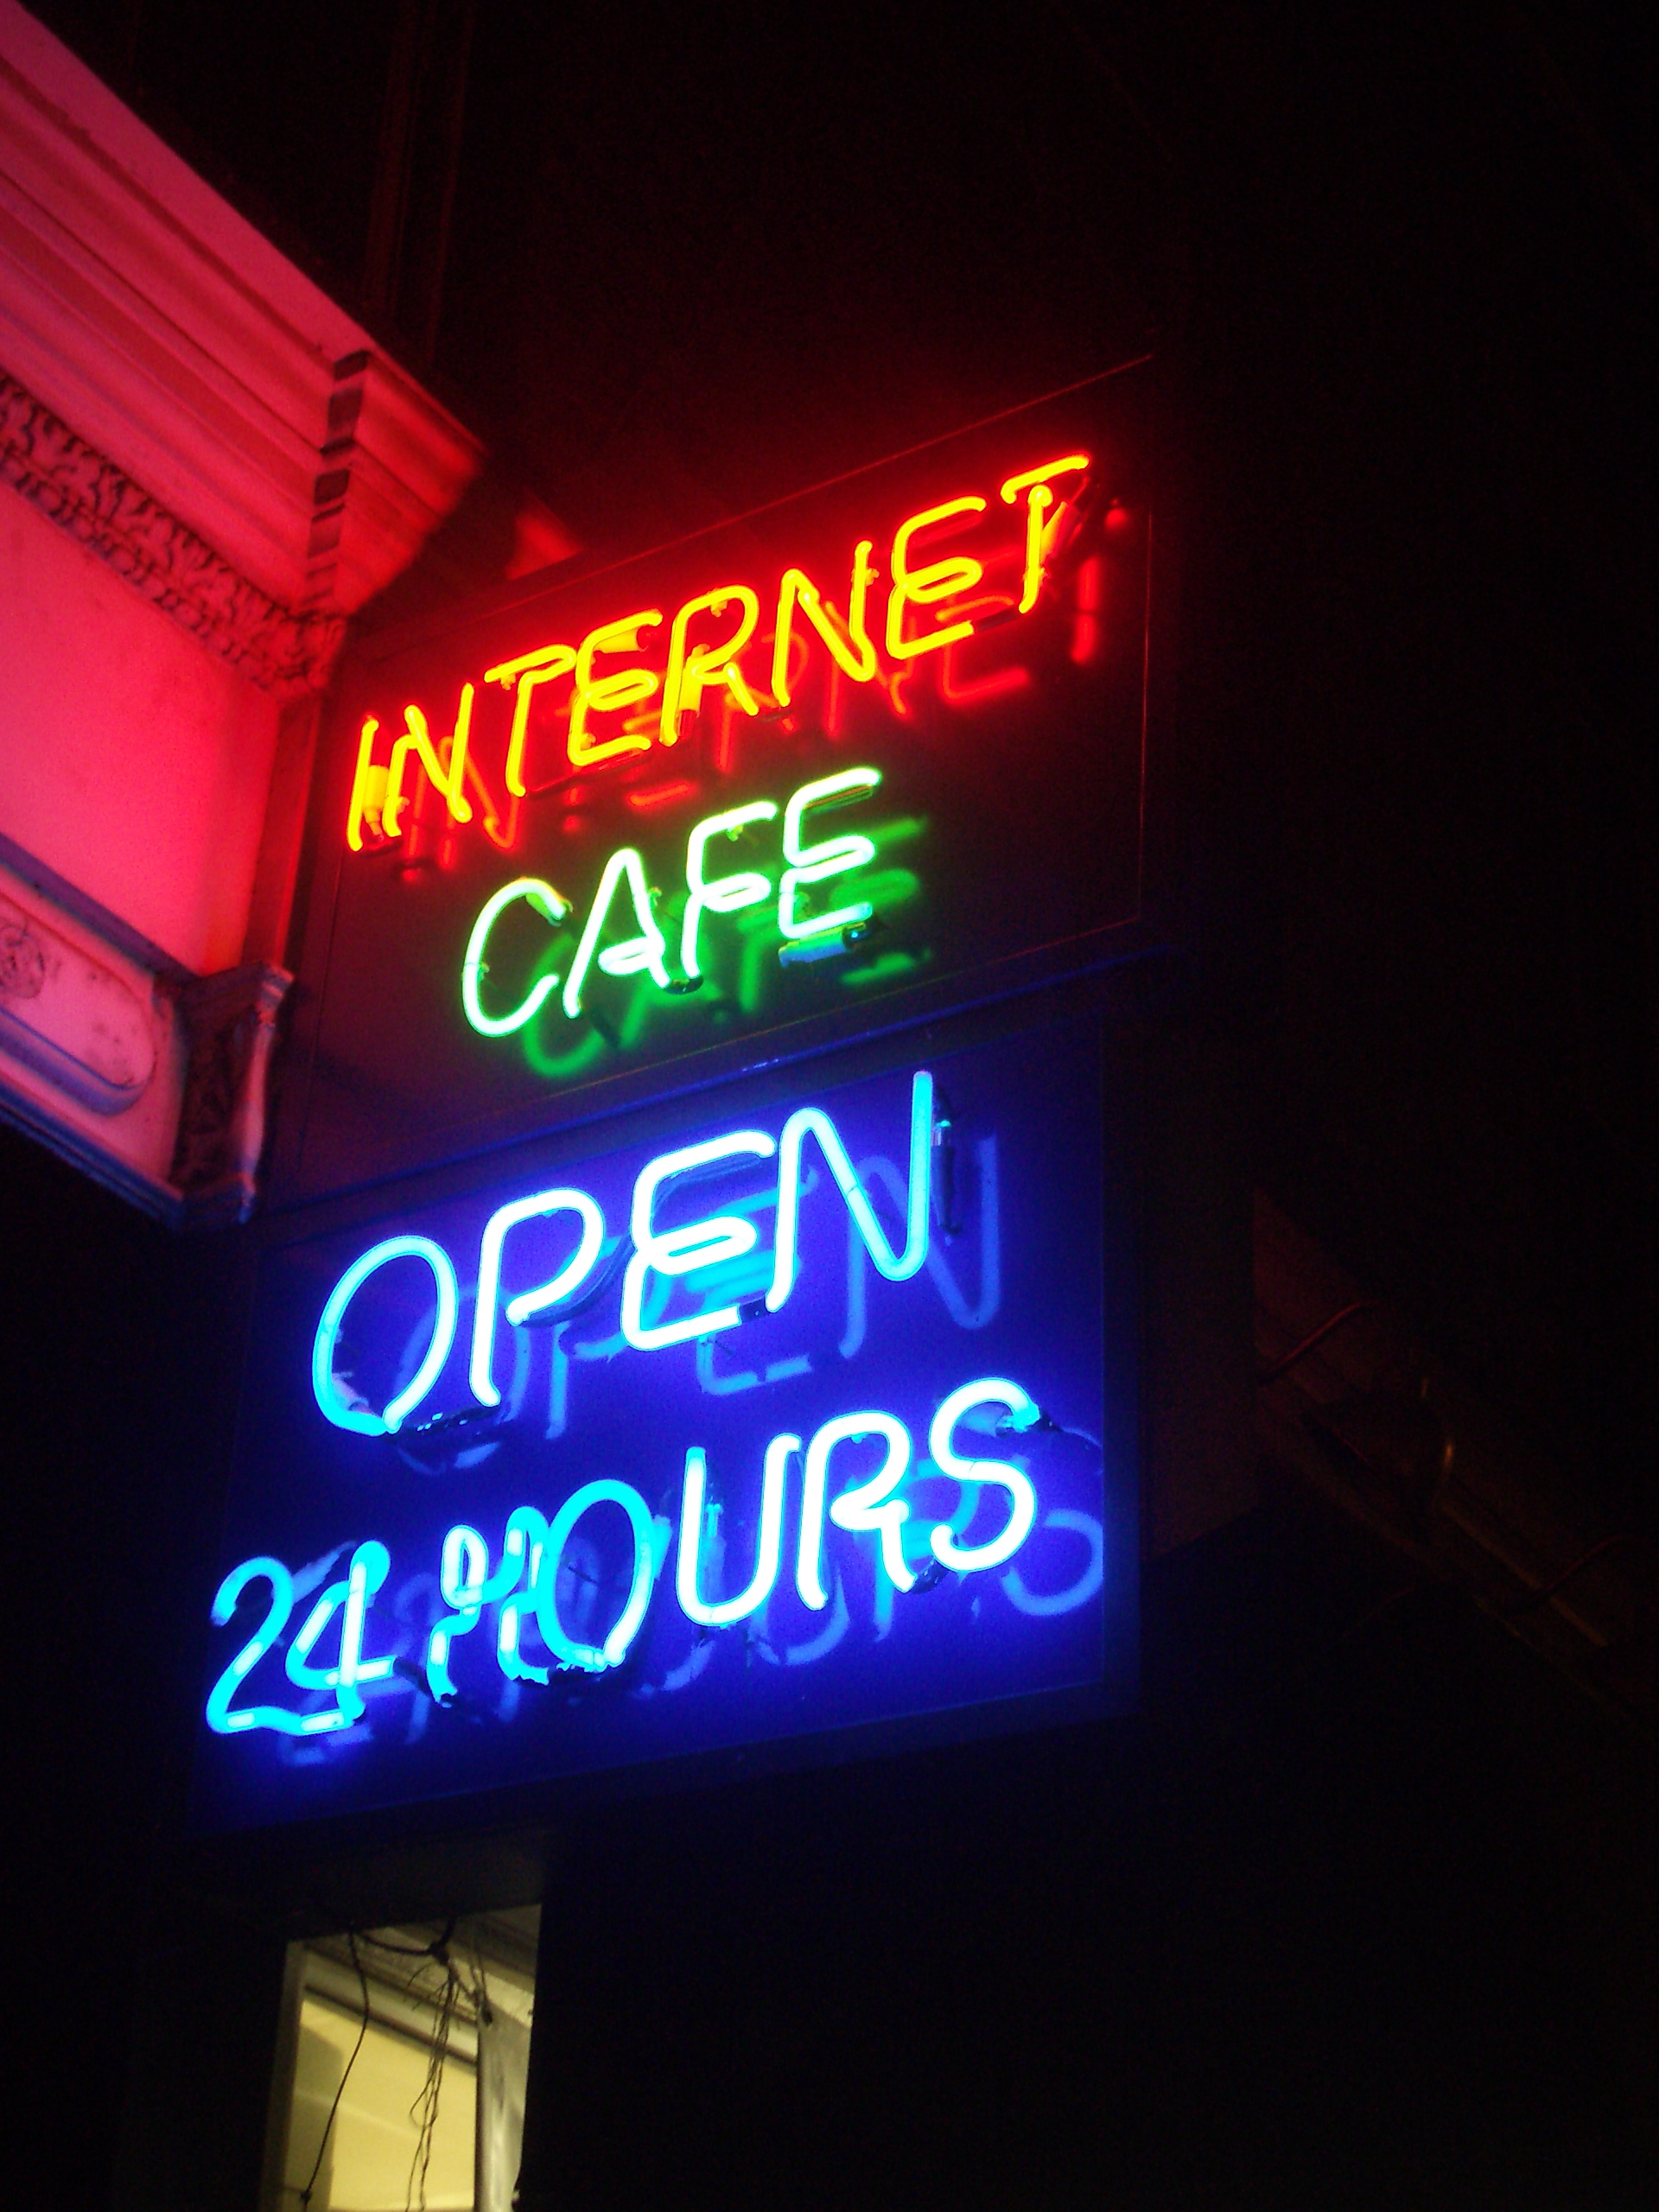 history of internet cafe History of internet cafe (computer shop) the online café phenomenon was started in july 1991 by wayne gregori in san francisco when he begansfnet coffeehouse network.